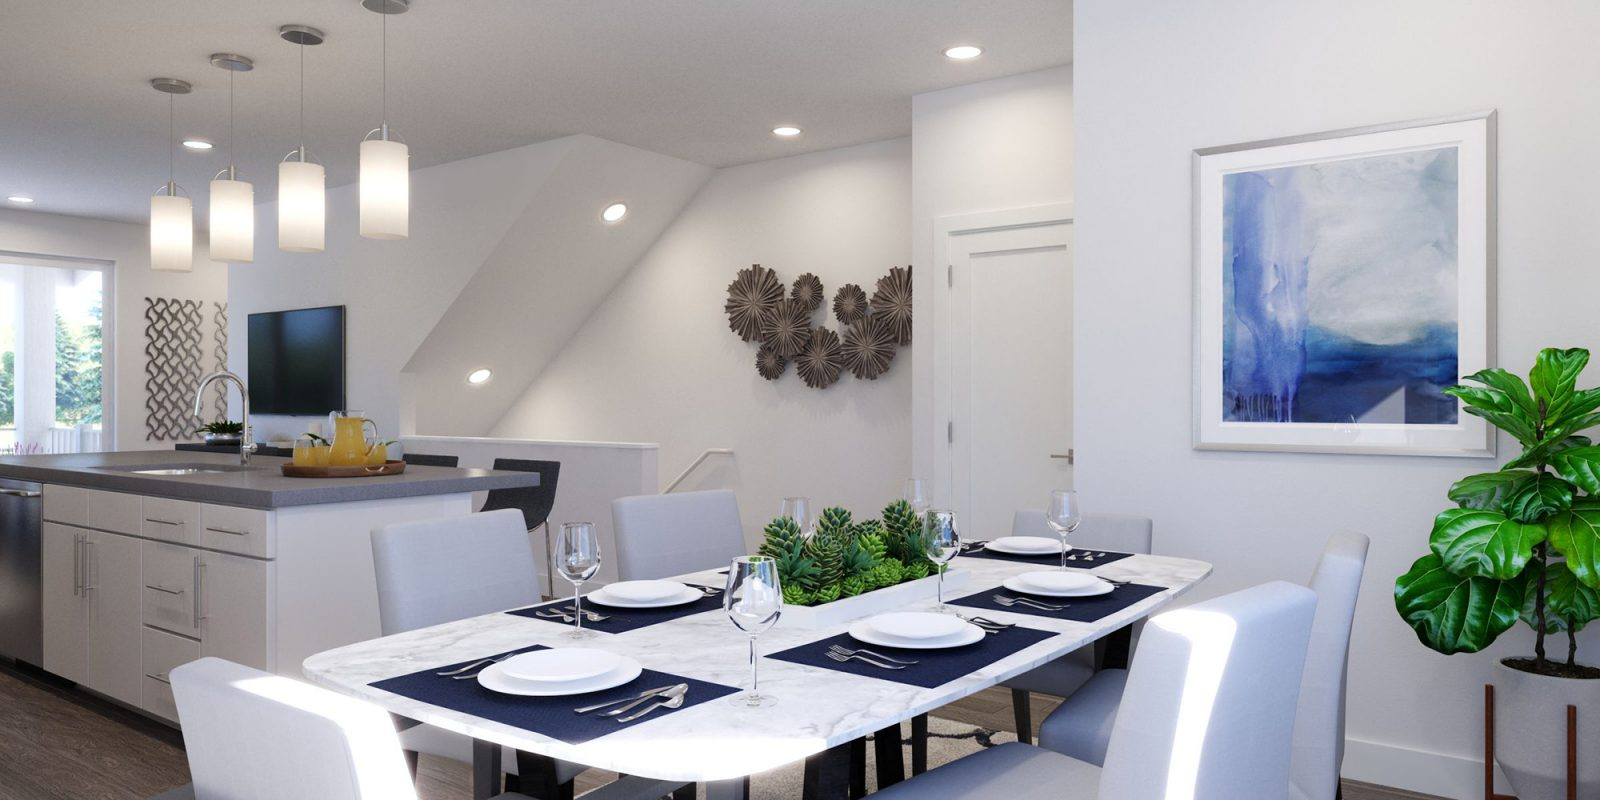 Baseline DoMore Rows: Oasis - Dining Nook